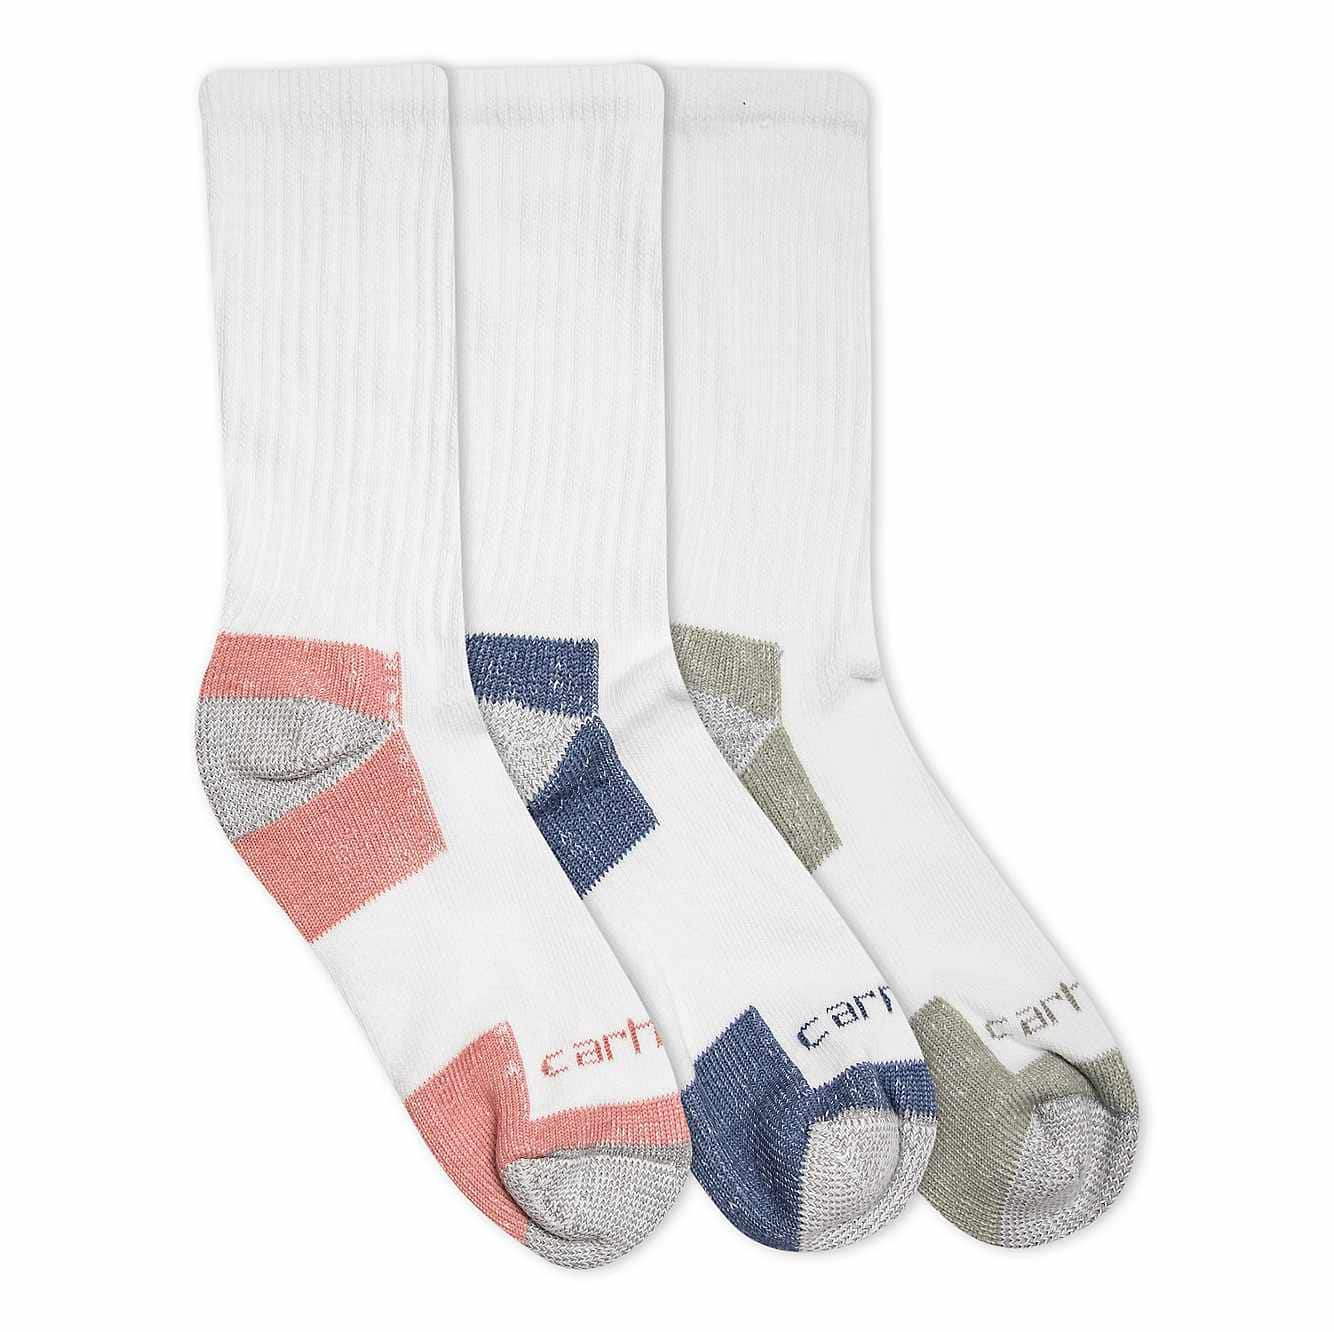 Picture of Cotton Crew Work Sock, 3 Pack in White Assorted